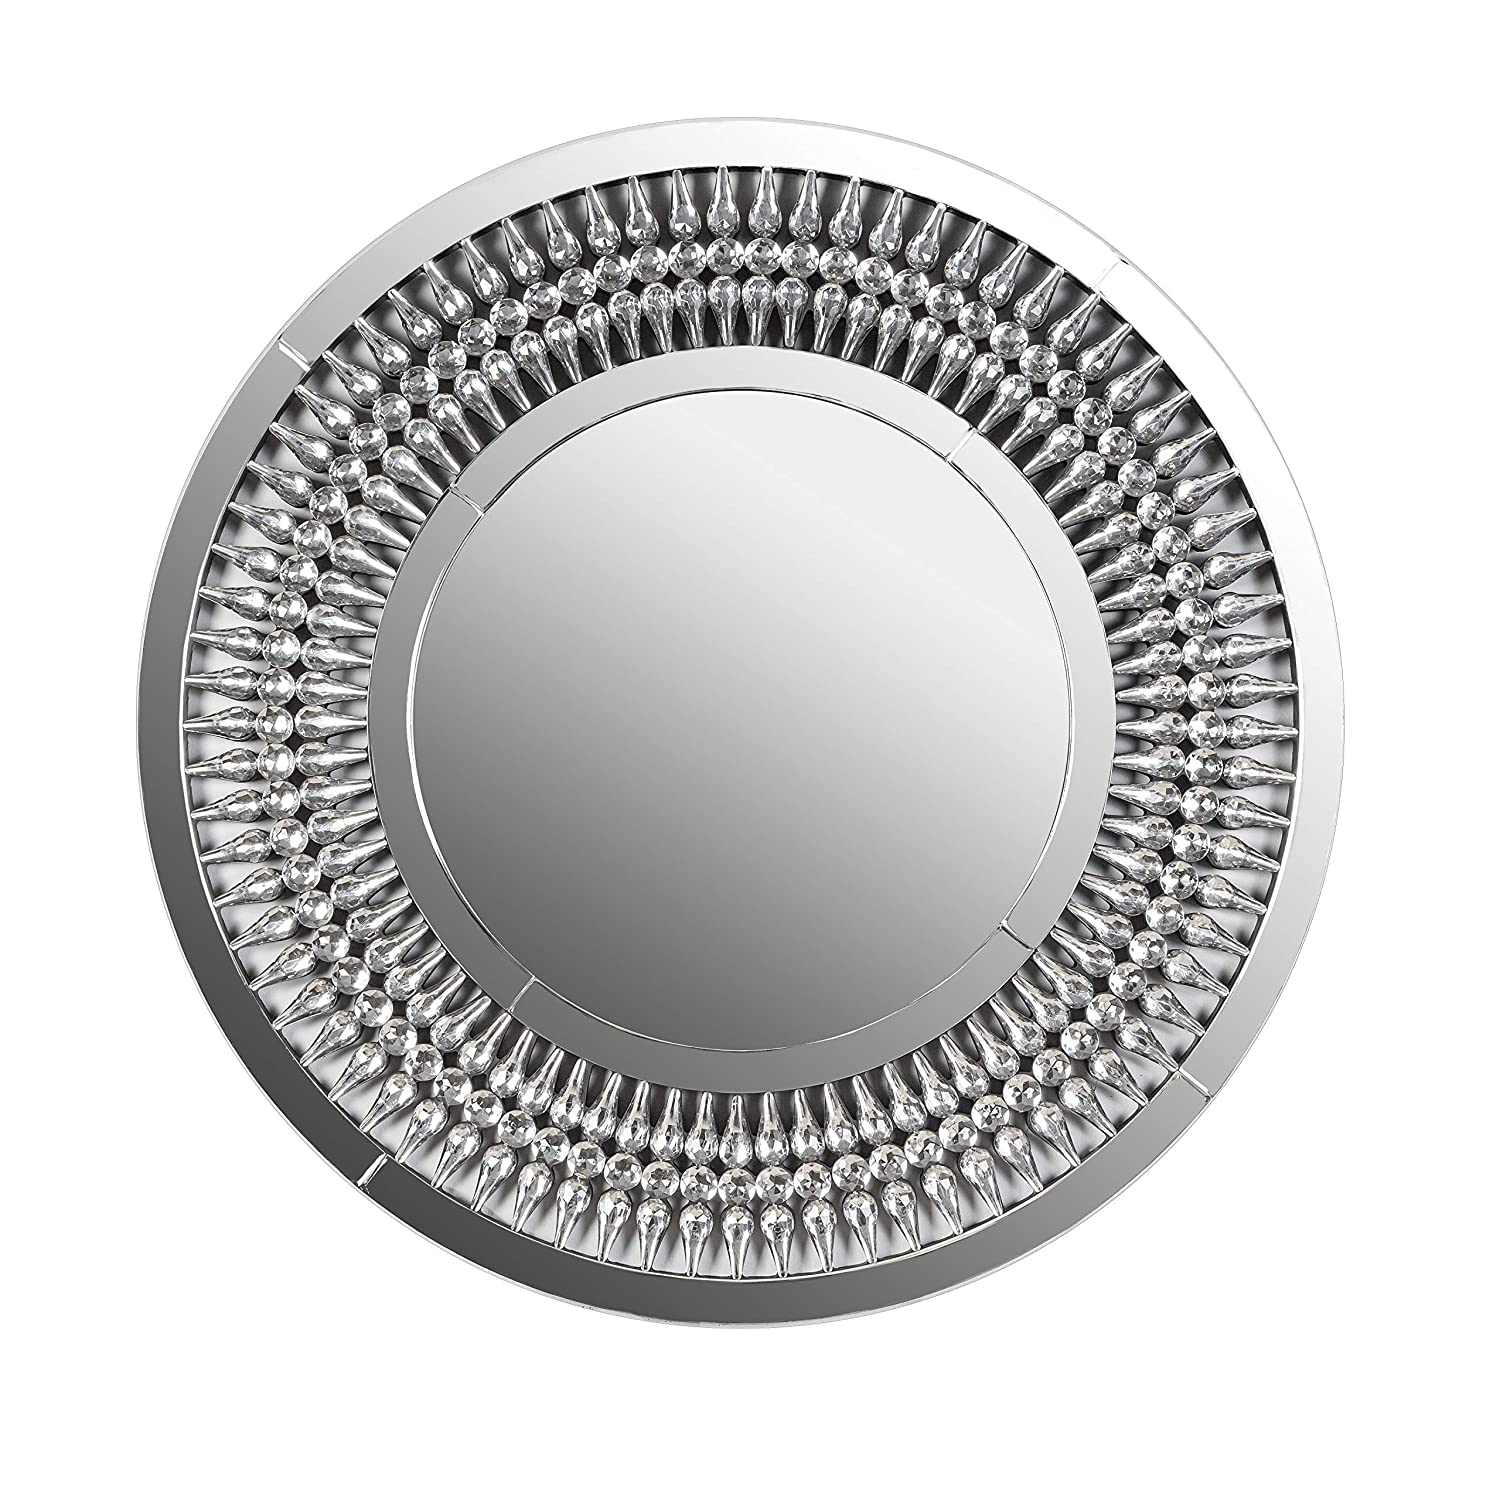 Bedroom Vanity Accent Mirror Makeup Hallway Marabell 31-Inch Round Large Wall Mirror Circular Bathroom